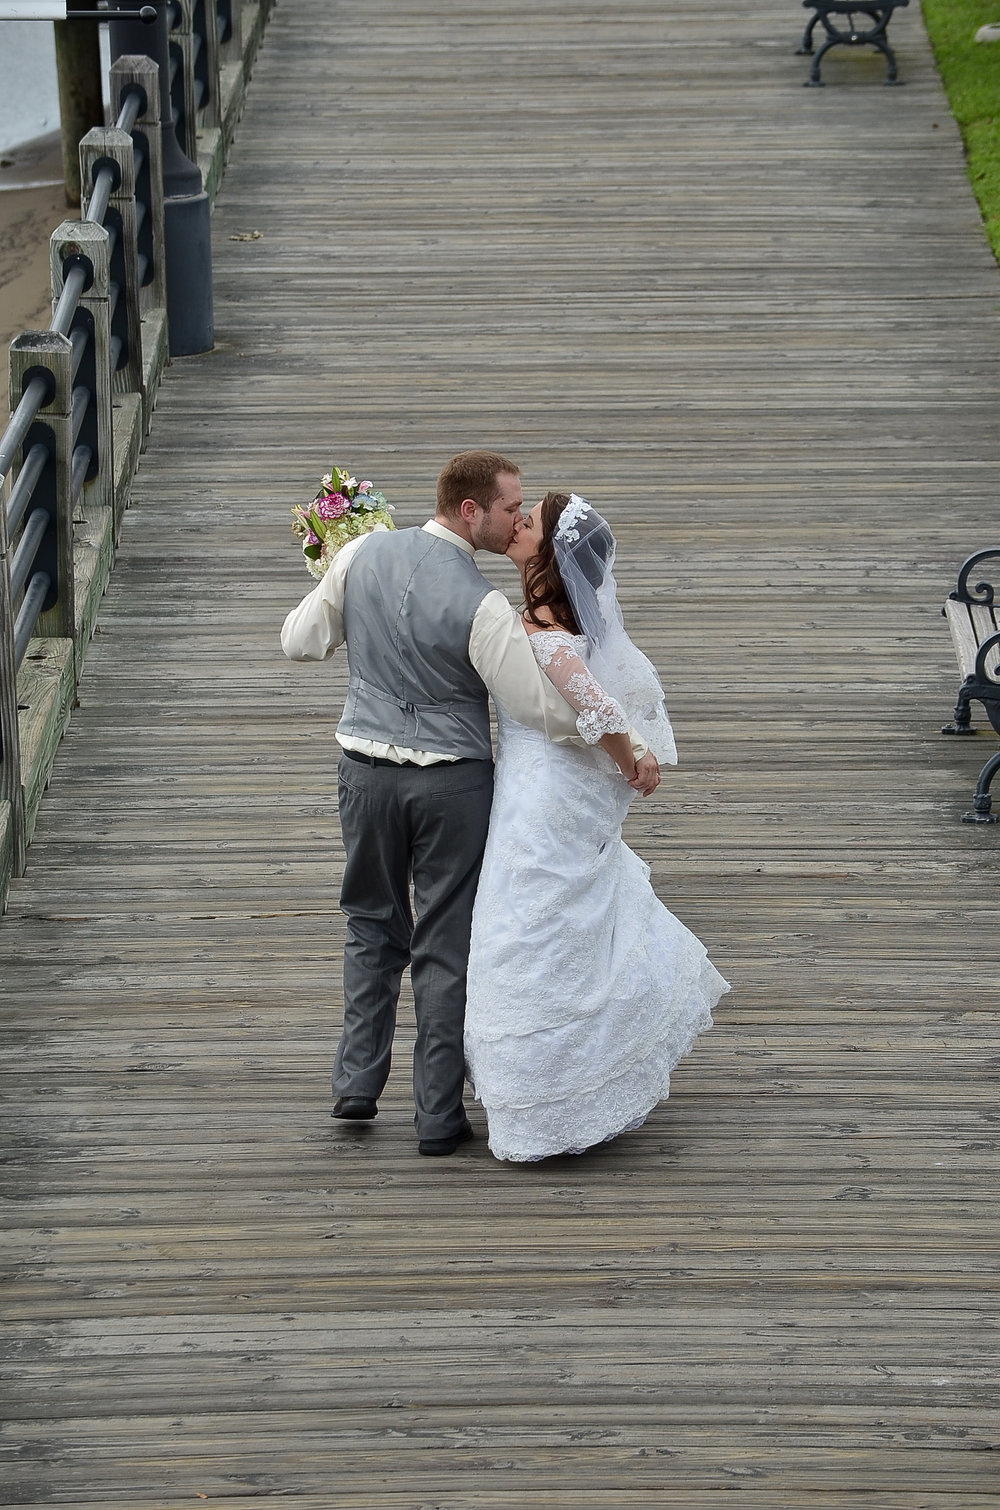 Bride and groom walk.